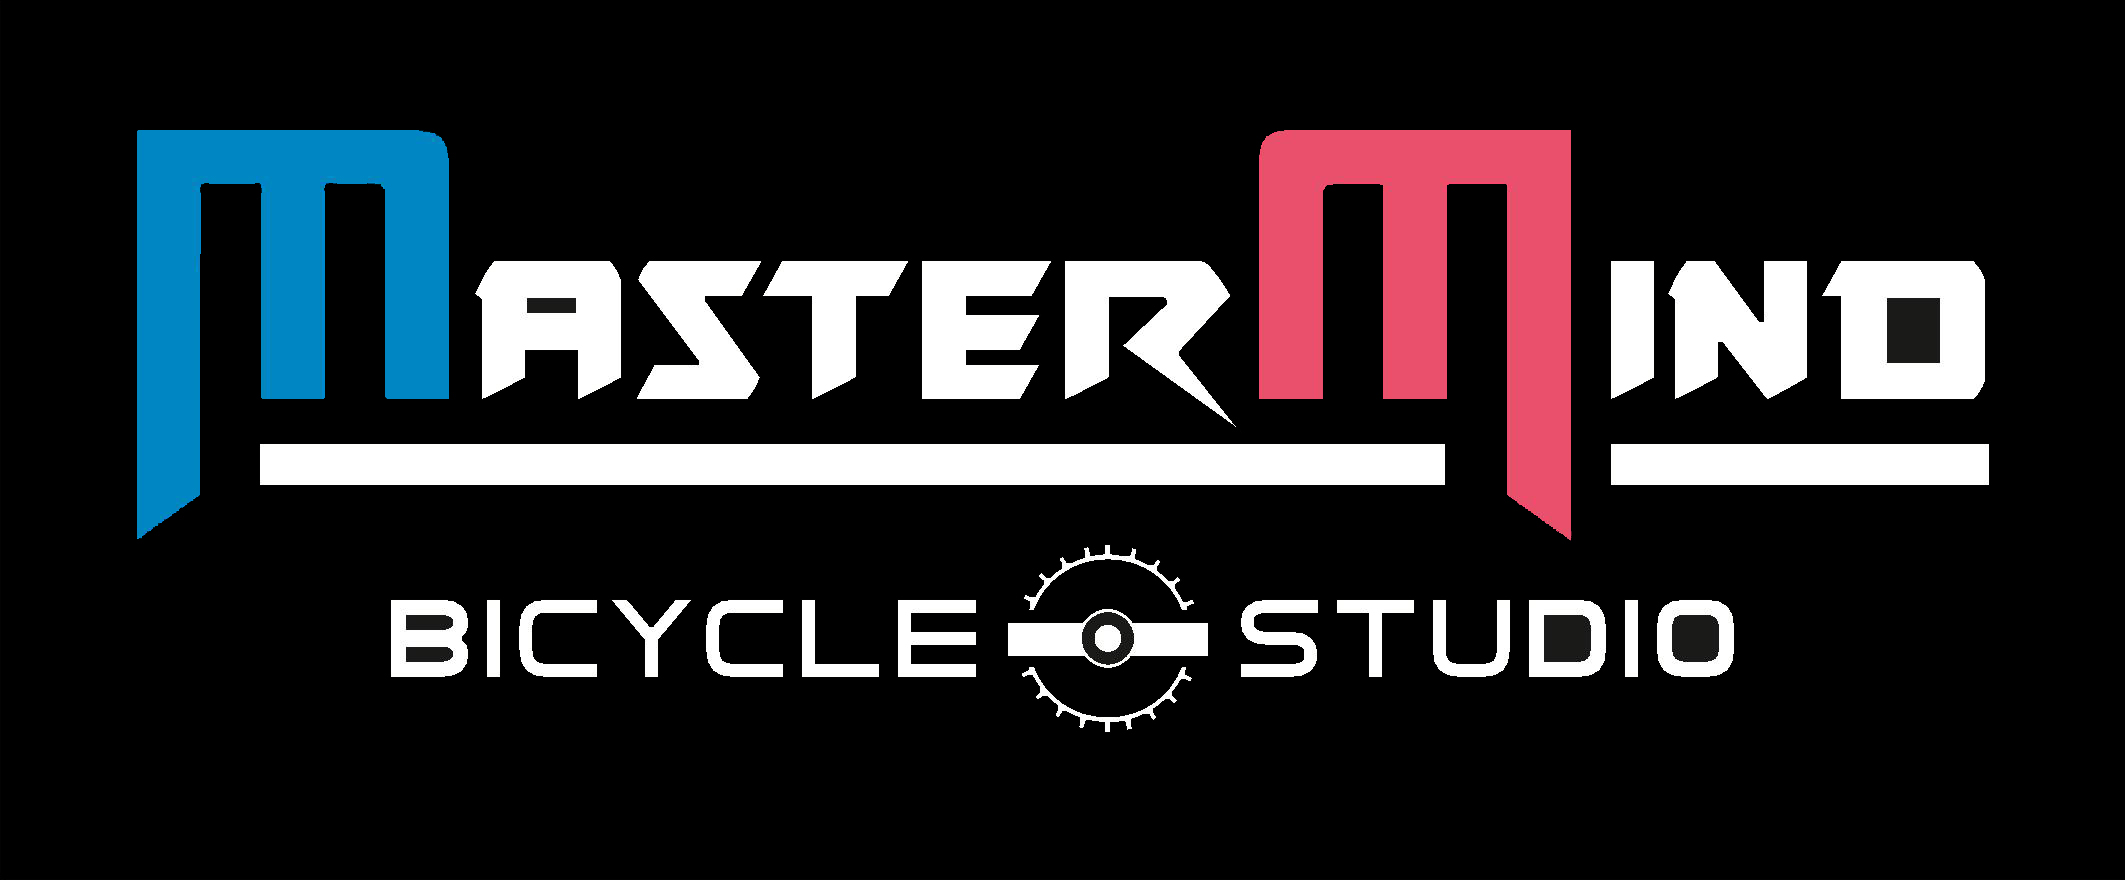 Mastermind Bicycle Studio